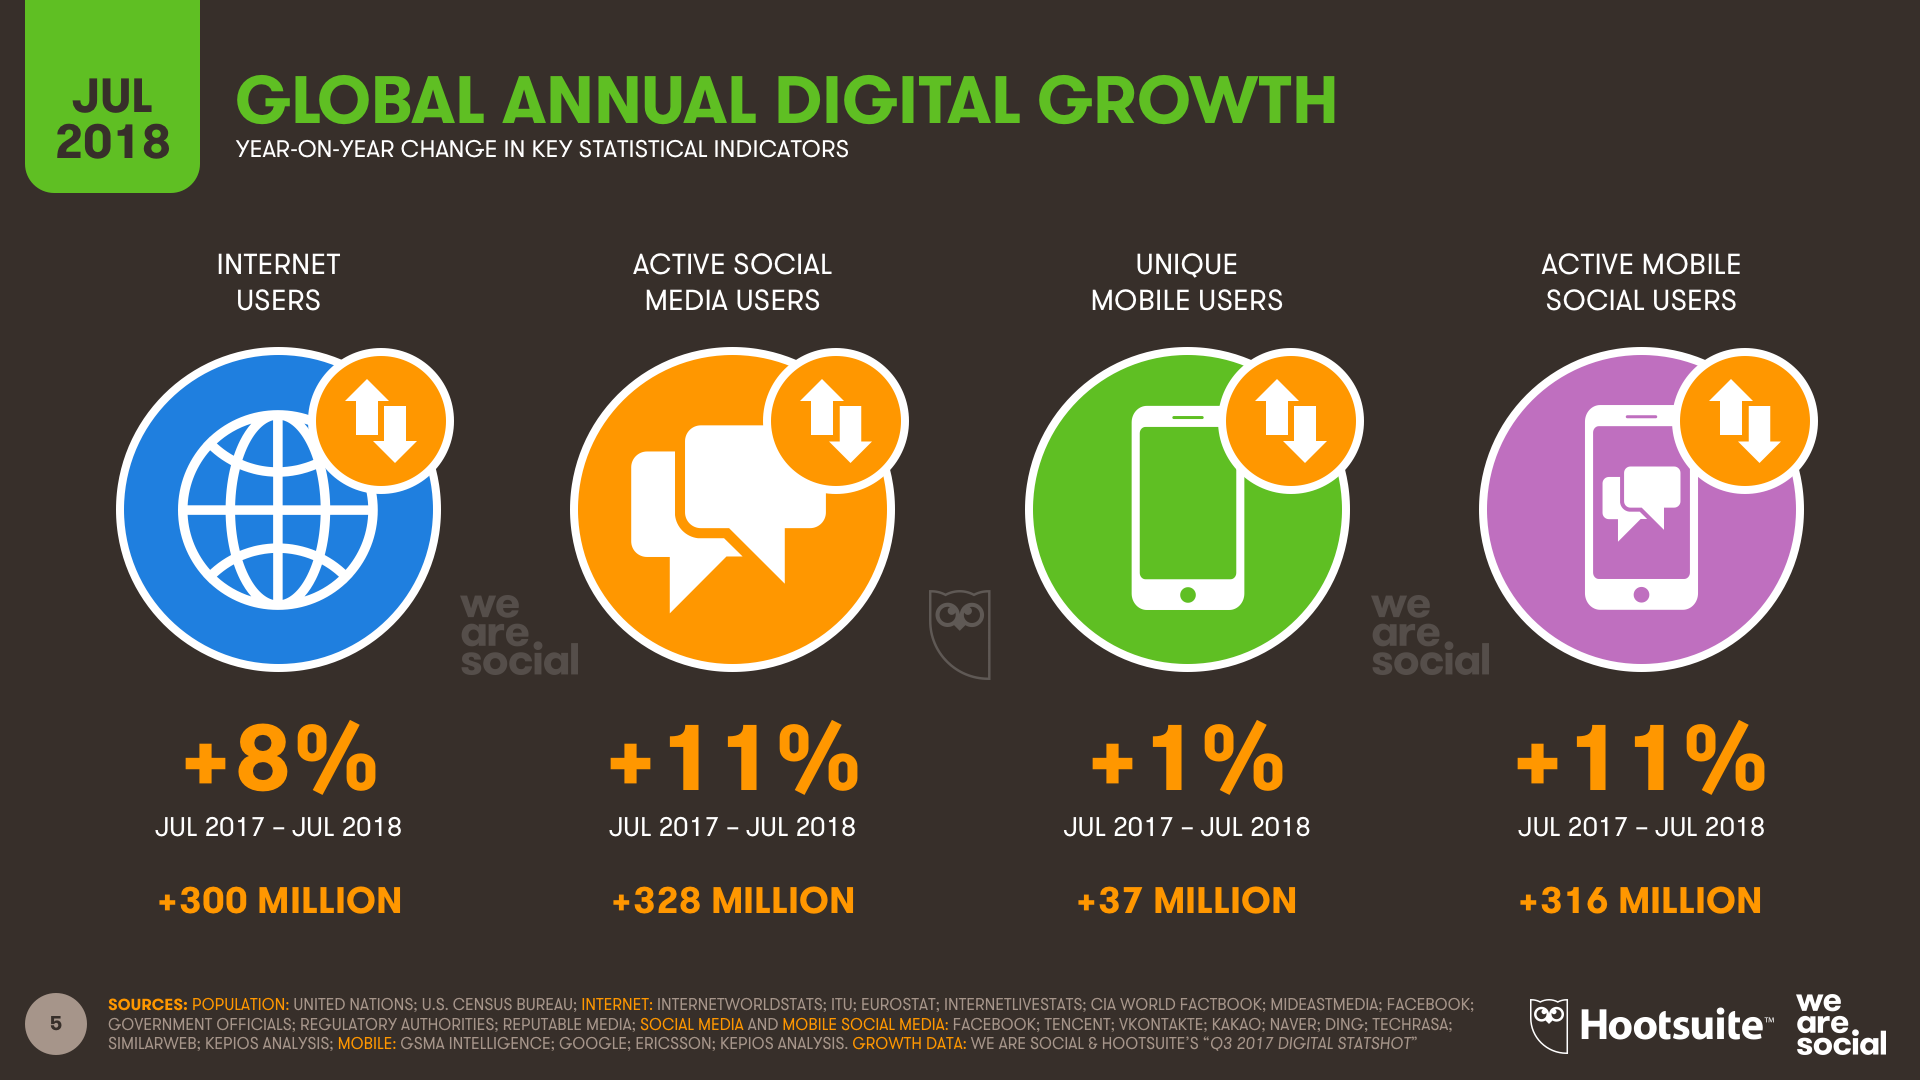 Annual Digital Growth July 2018 DataReportal